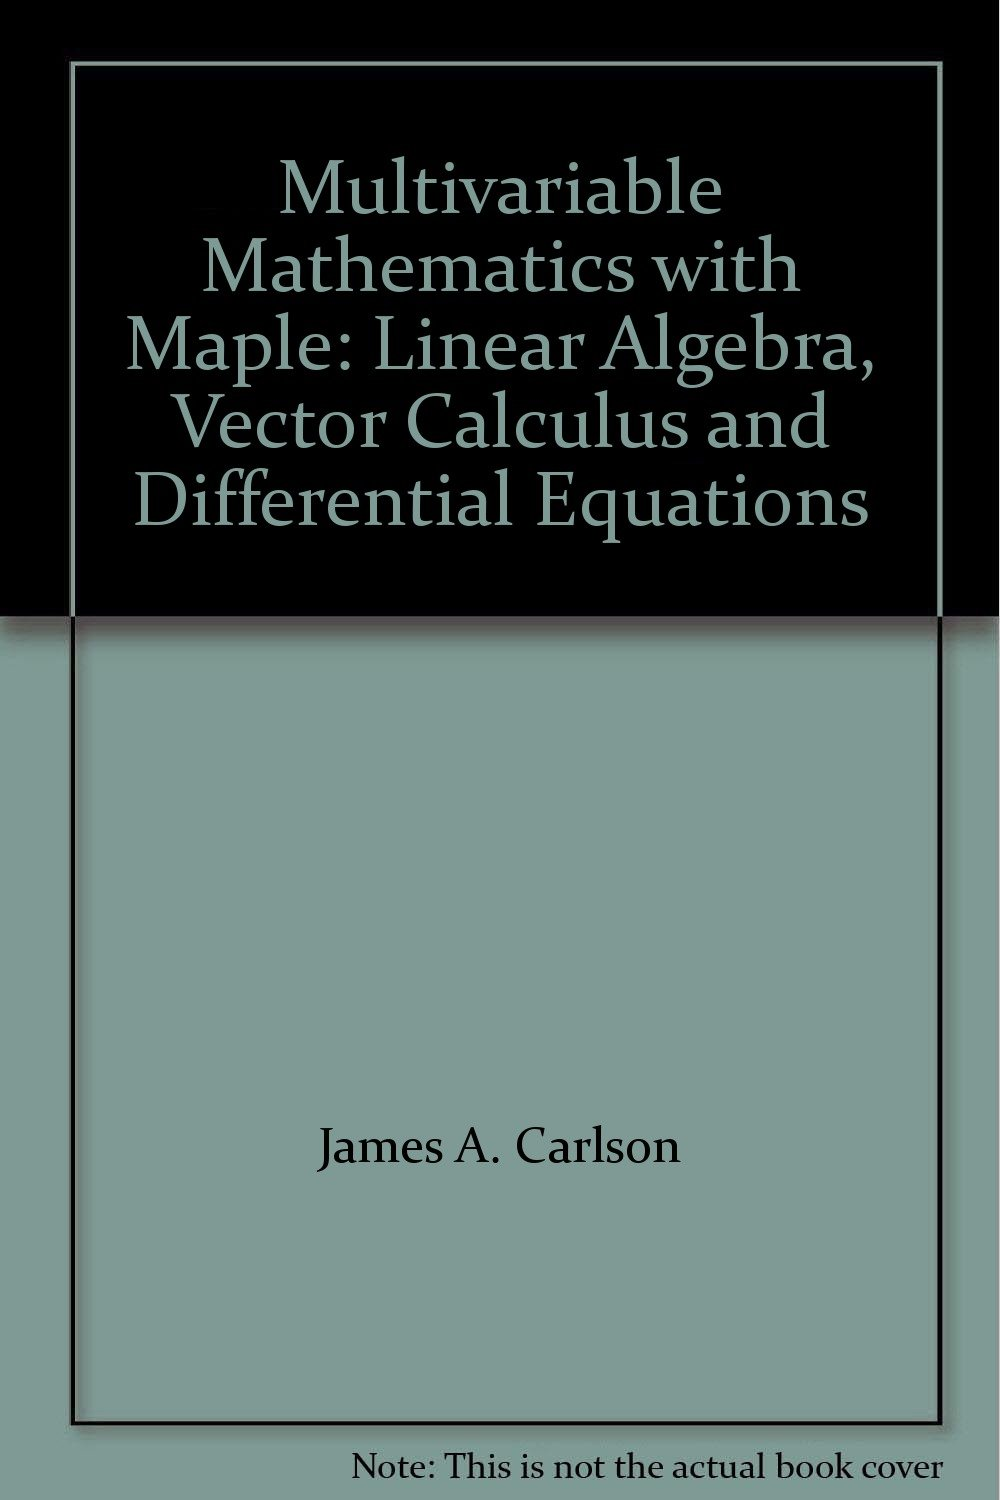 Multivariable Mathematics with Maple: Linear Algebra, Vector Calculus and Differential  Equations: James A. Carlson, Jennifer M. Johnson: 9780132703154: ...